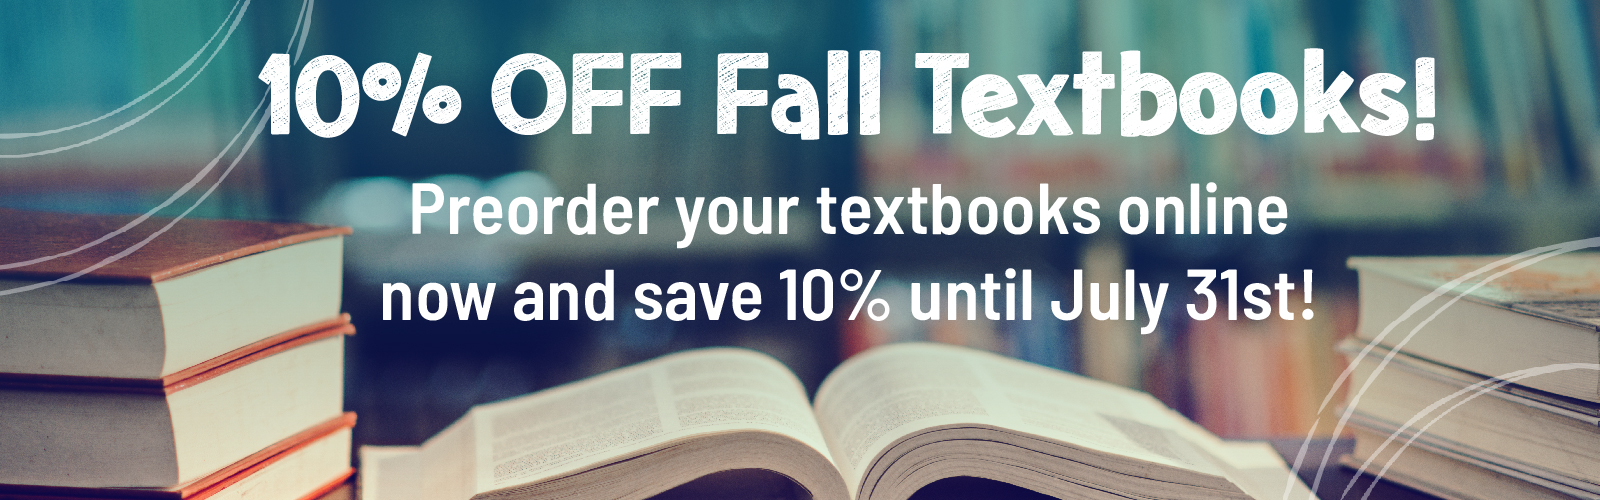 10% off Fall Textbooks | Preorder your textbooks online now and save 10% until July 31st